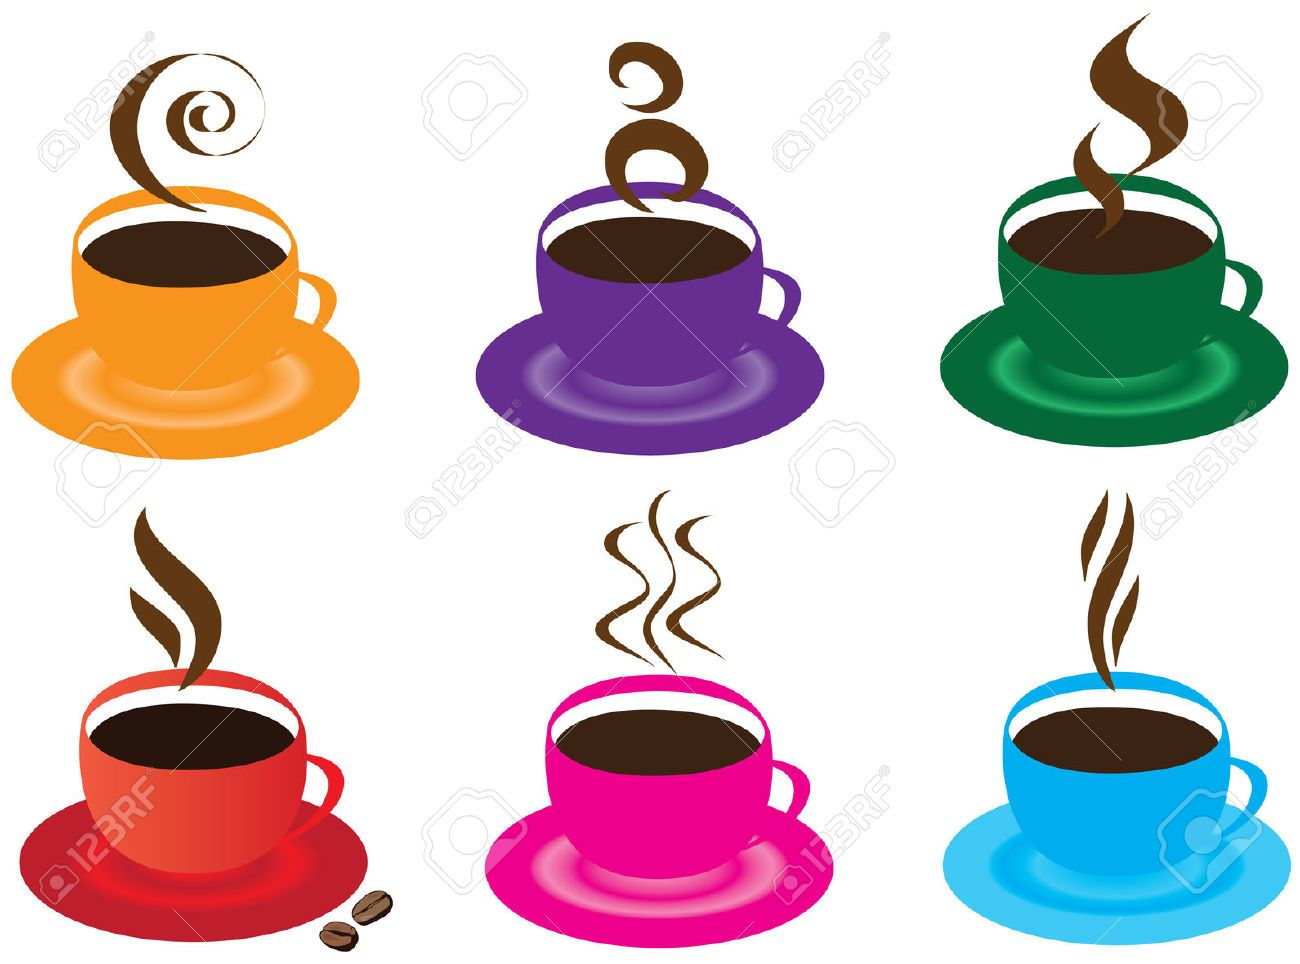 Stock Vector Coffee cups, Steaming cup, Cup